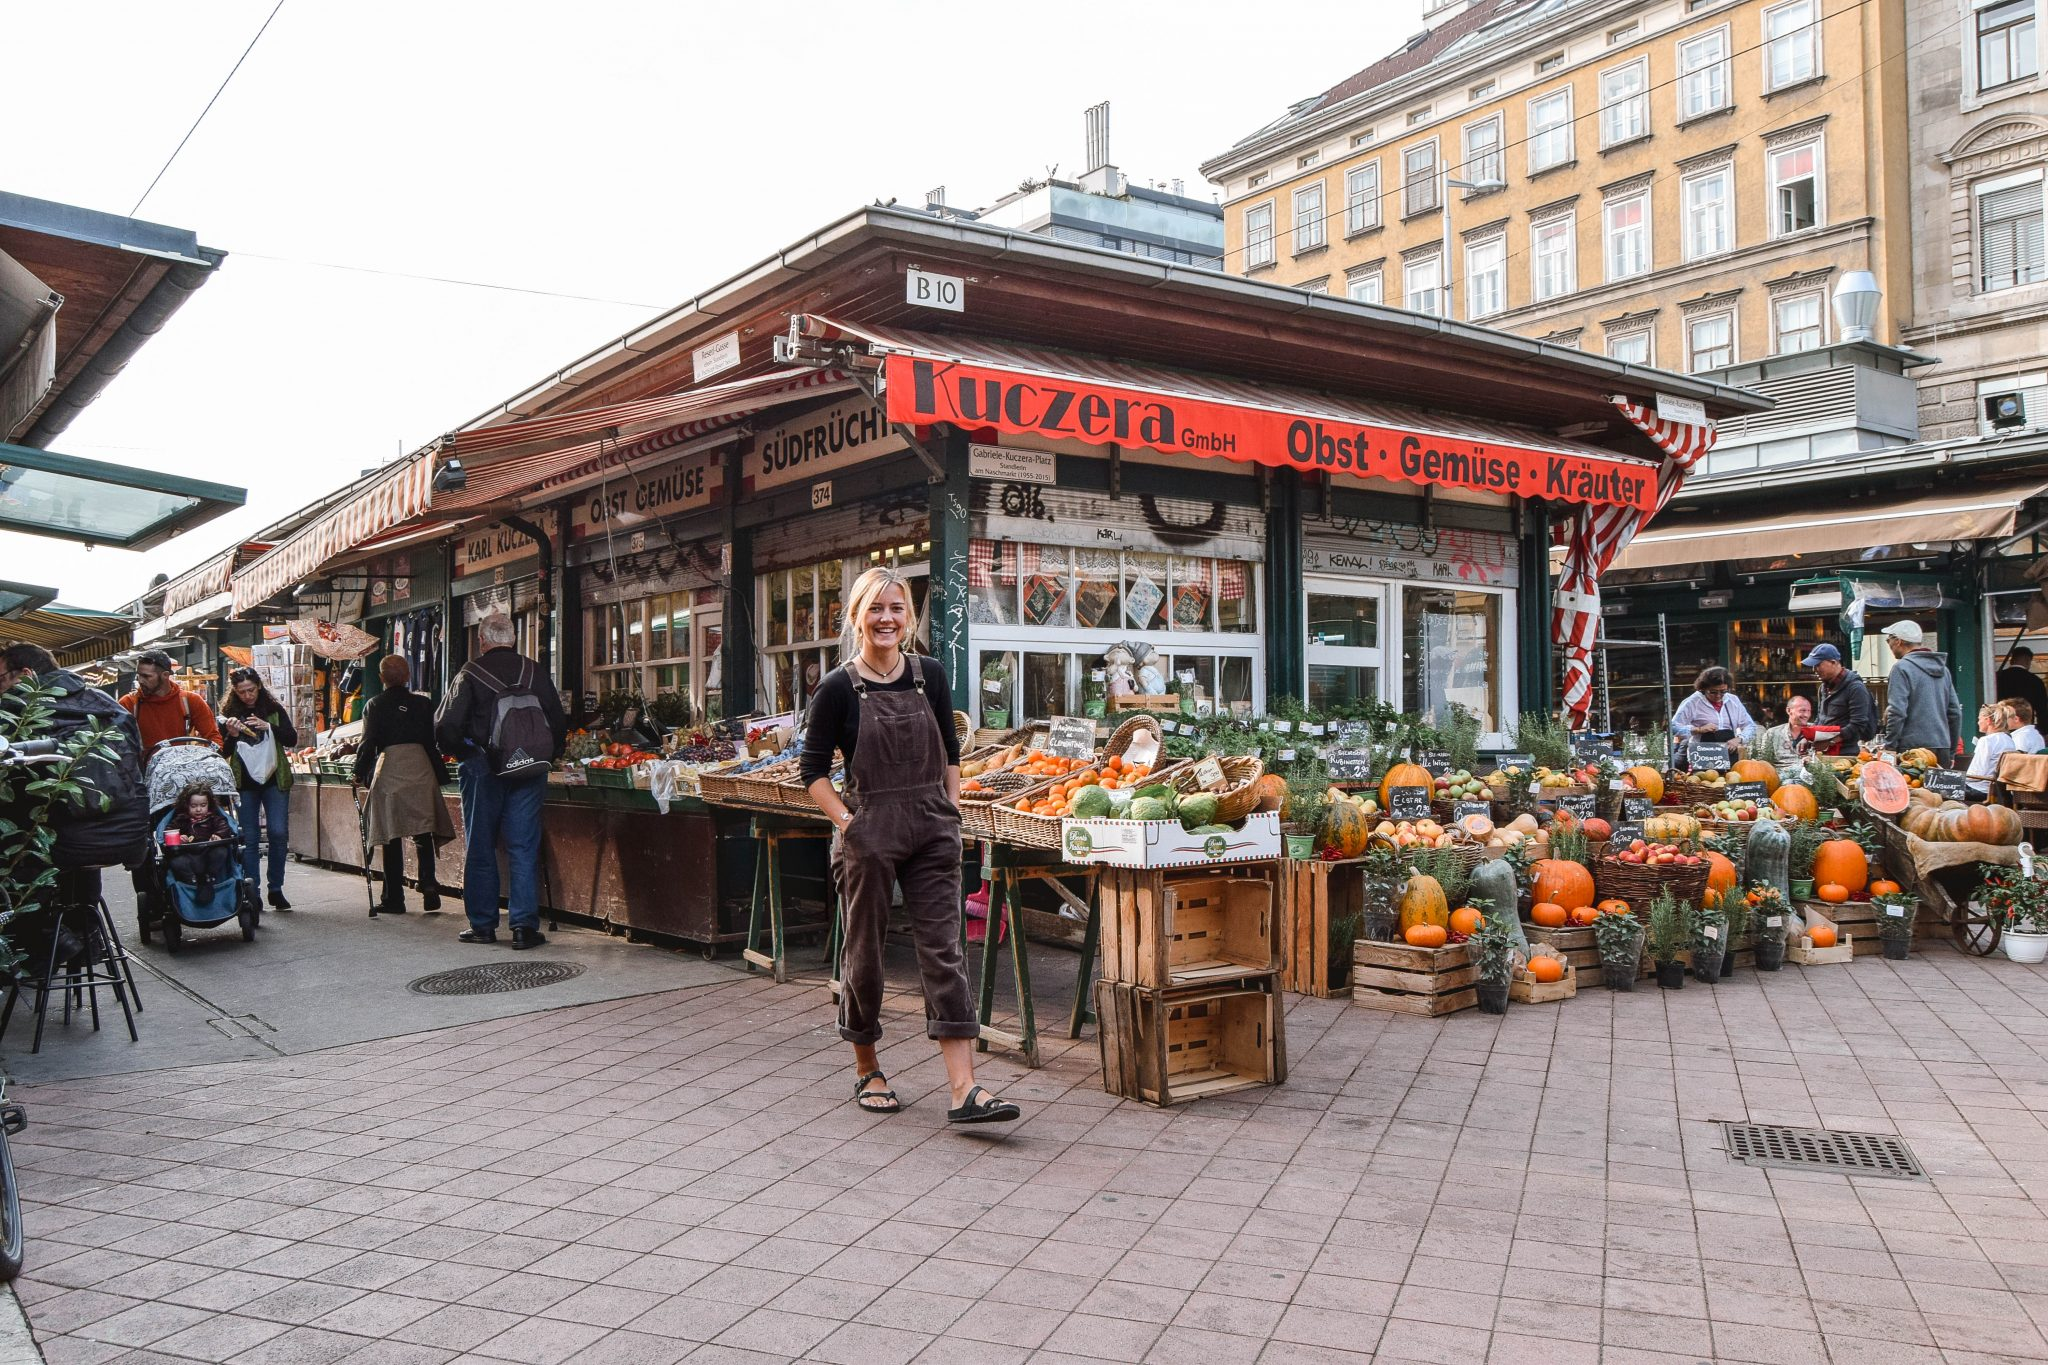 Wanderers & Warriors - Charlie & Lauren UK Travel Couple - Naschmarkt Vienna In A Day - Things To Do In Vienna Itinerary 3 Days In Vienna 3 Day Itinerary Vienna 2 Day Itinerary